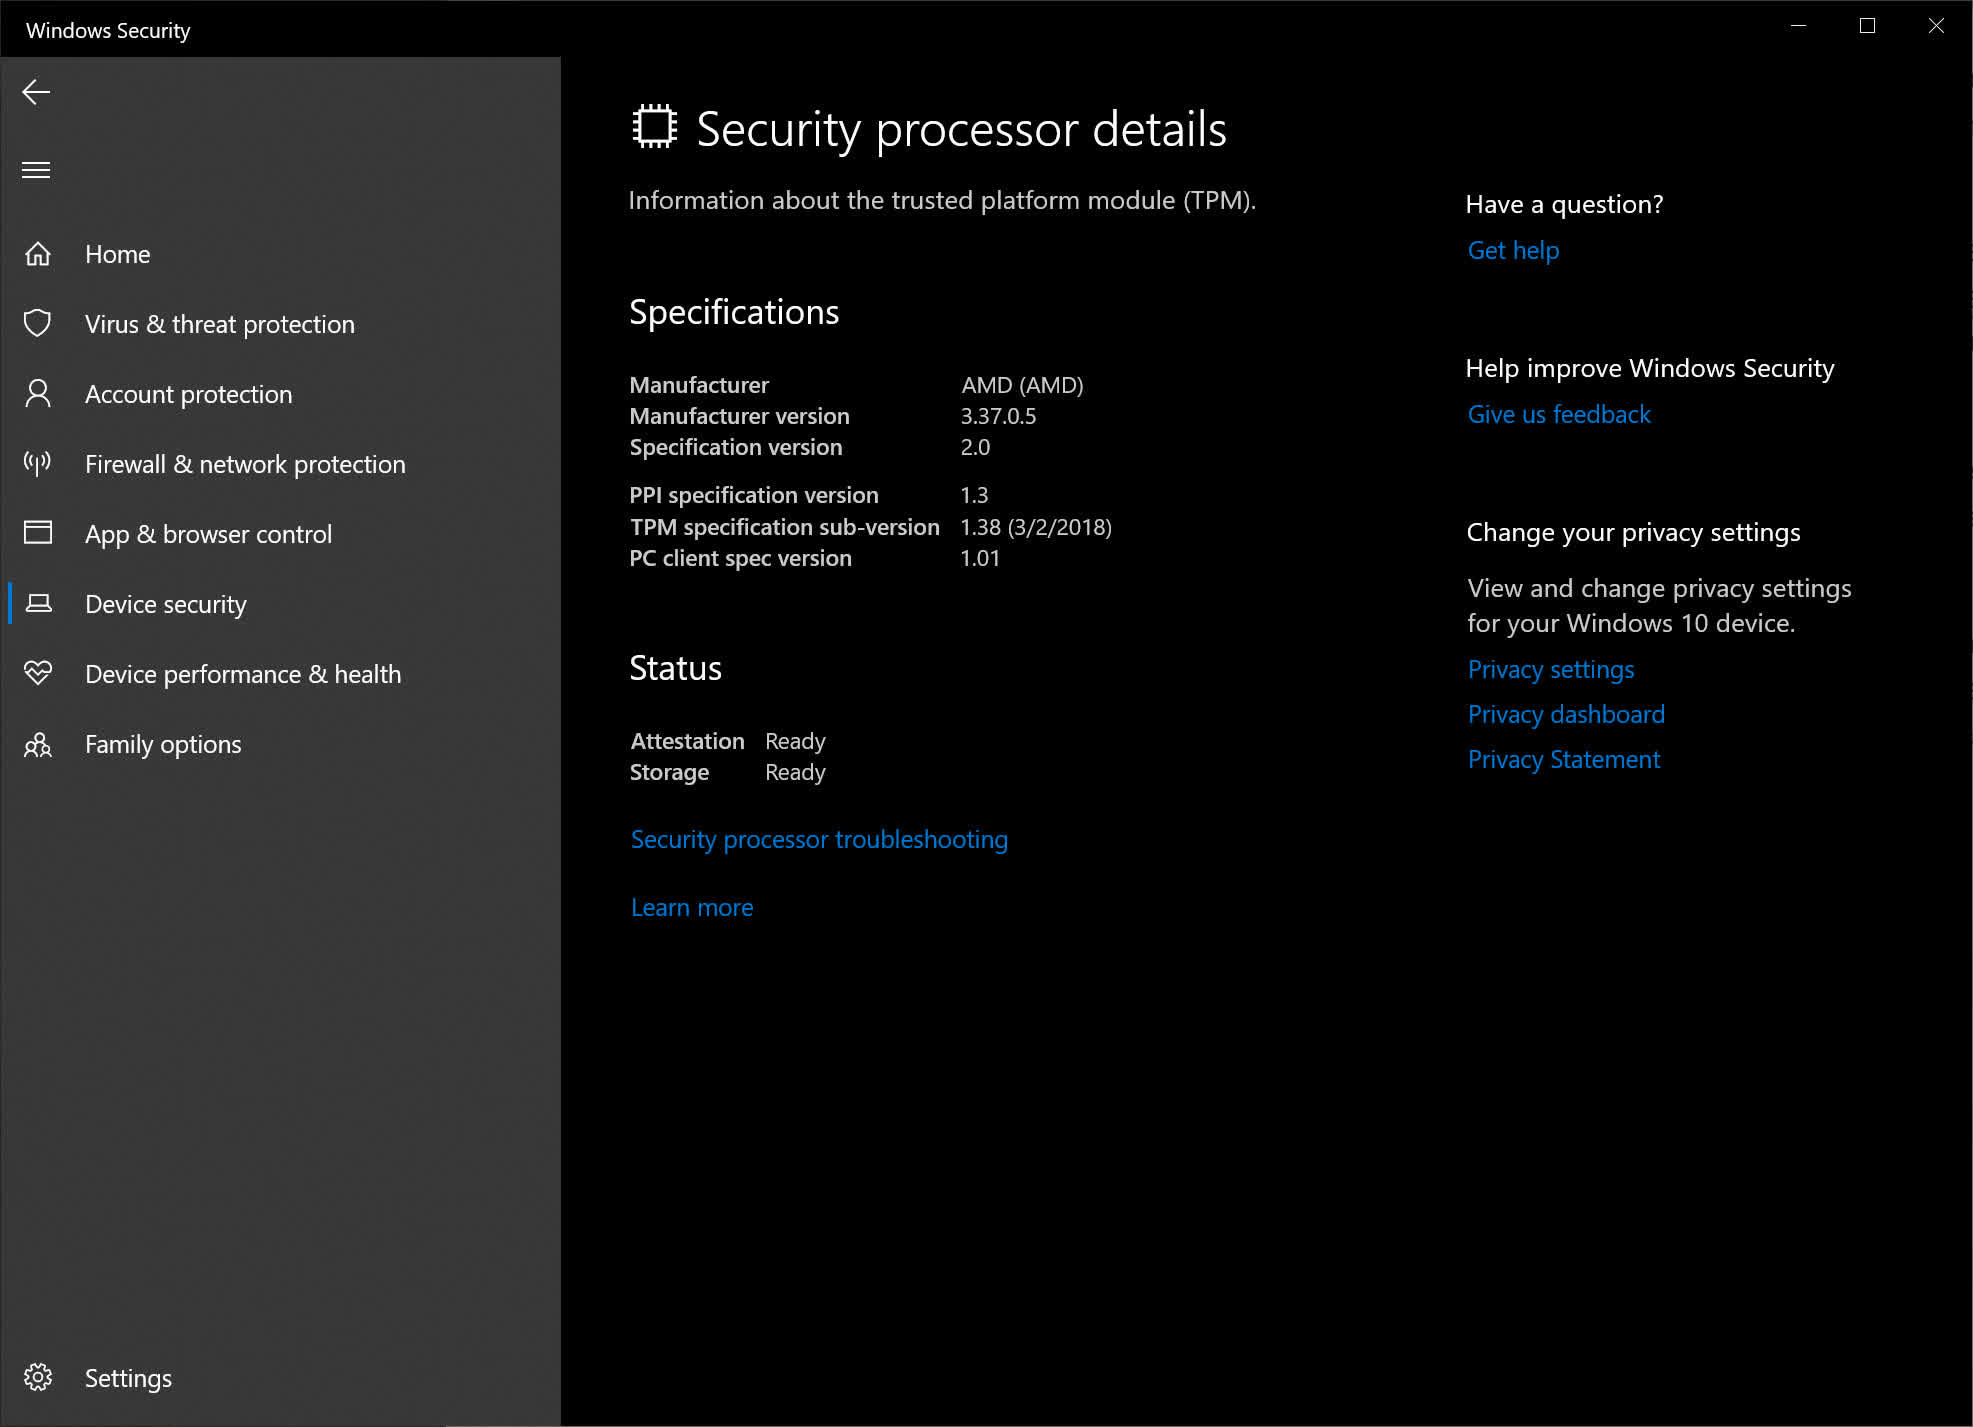 Motherboard makers are releasing updates to help with Windows 11 compatibility